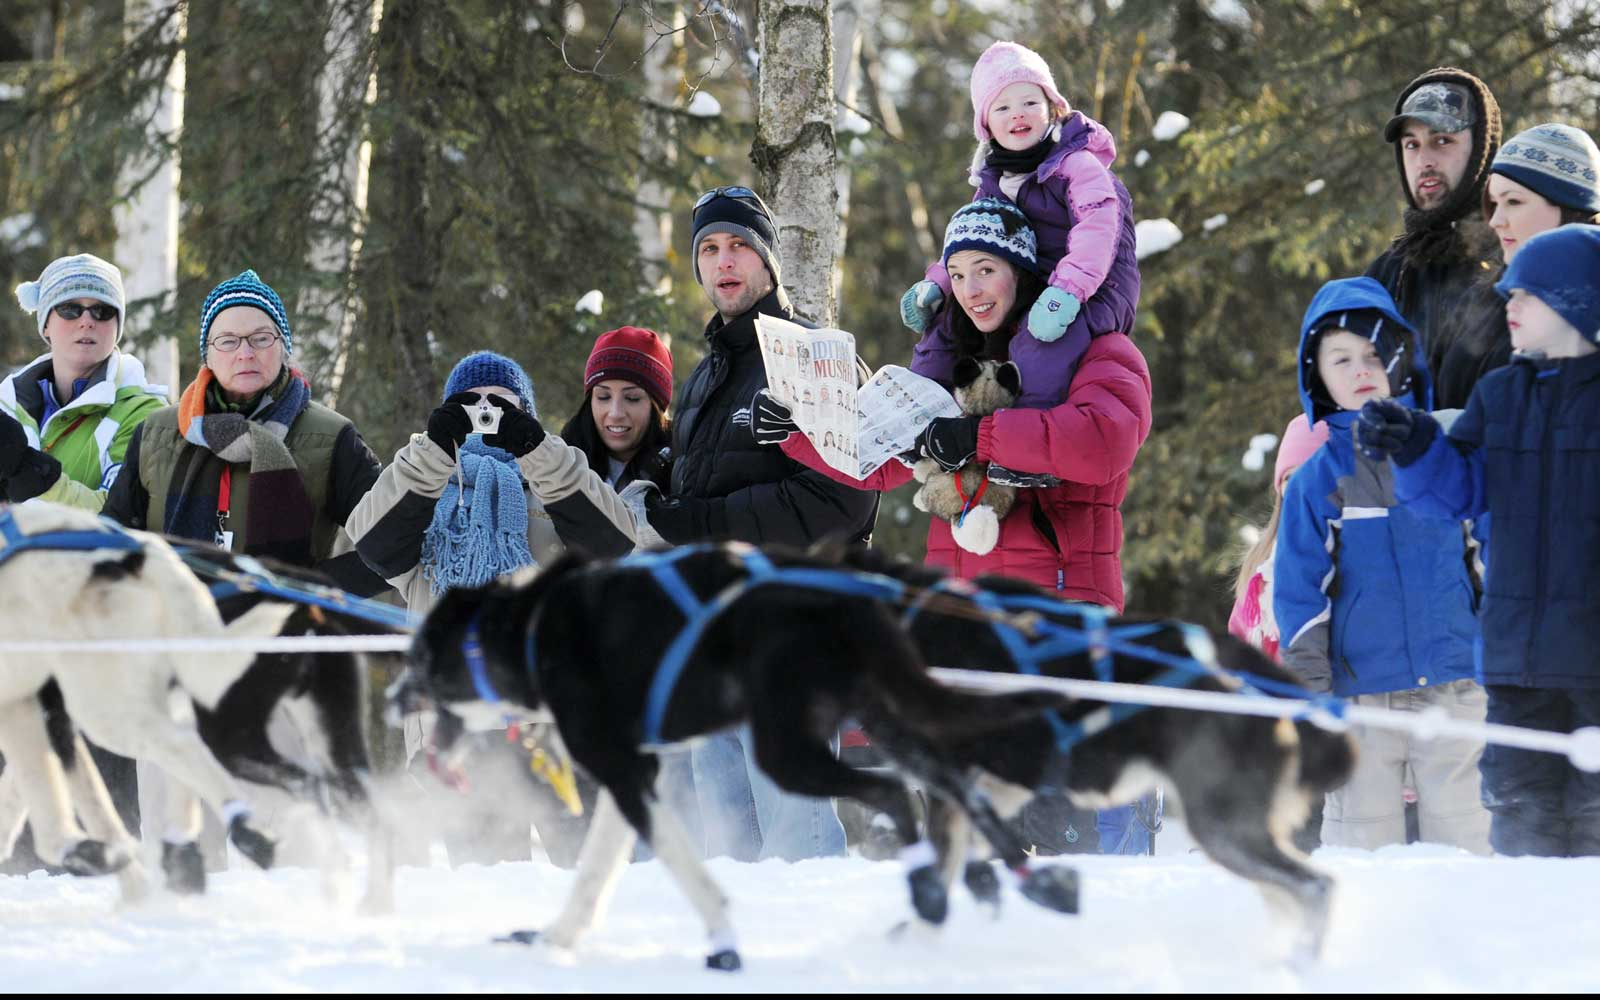 Iditarod fans watch teams round the corner at Goose Lake during the ceremonial start in Anchorage, Alaska.